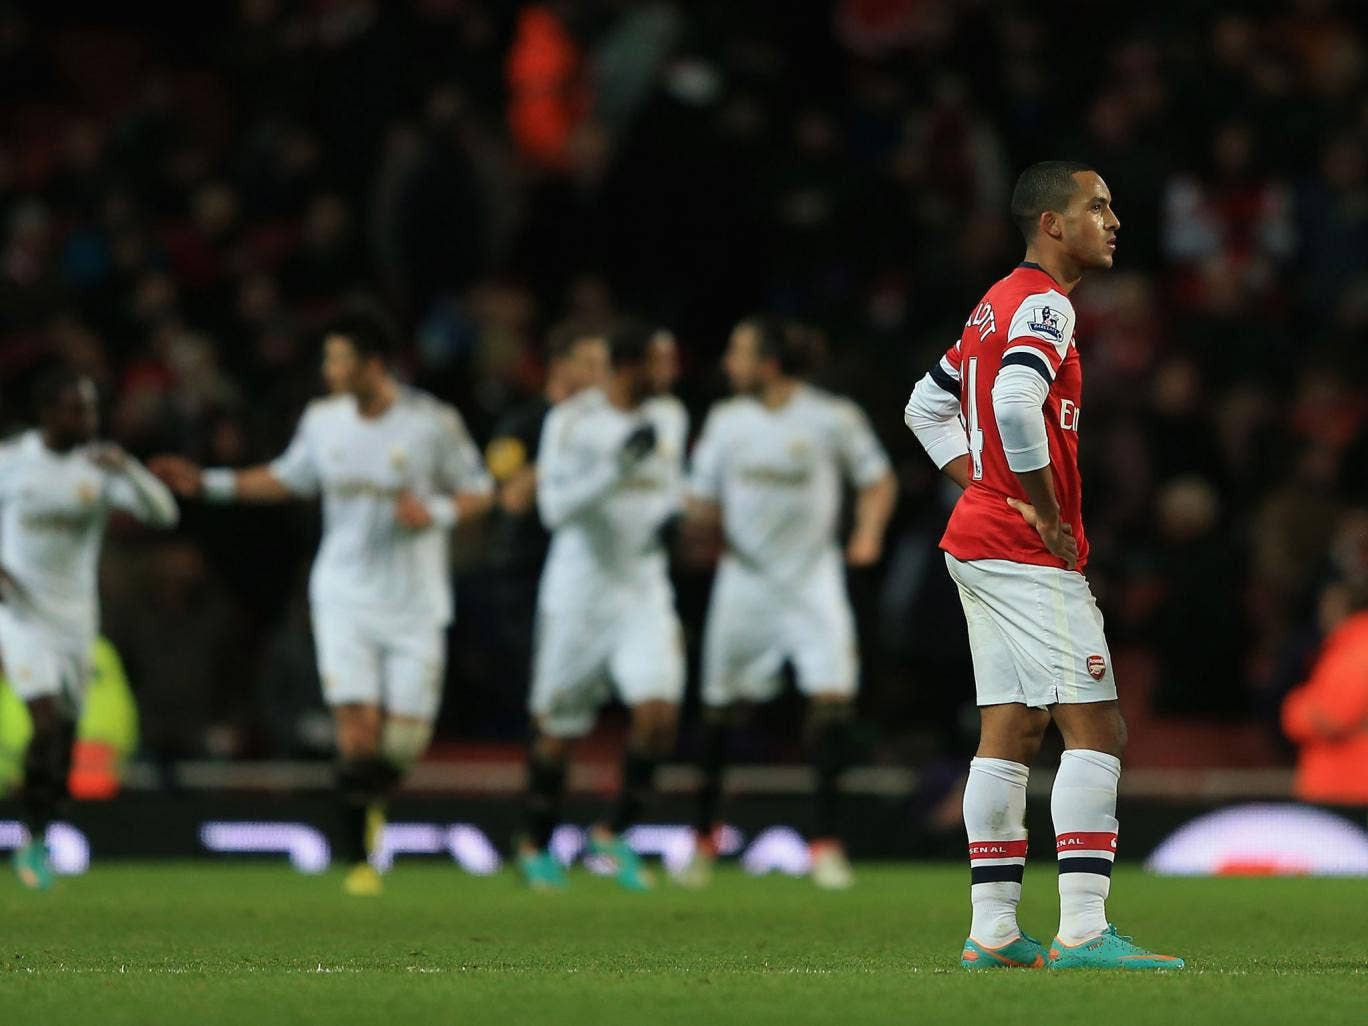 Theo Walcott looks upset after Swansea score their opening goal late in the second half